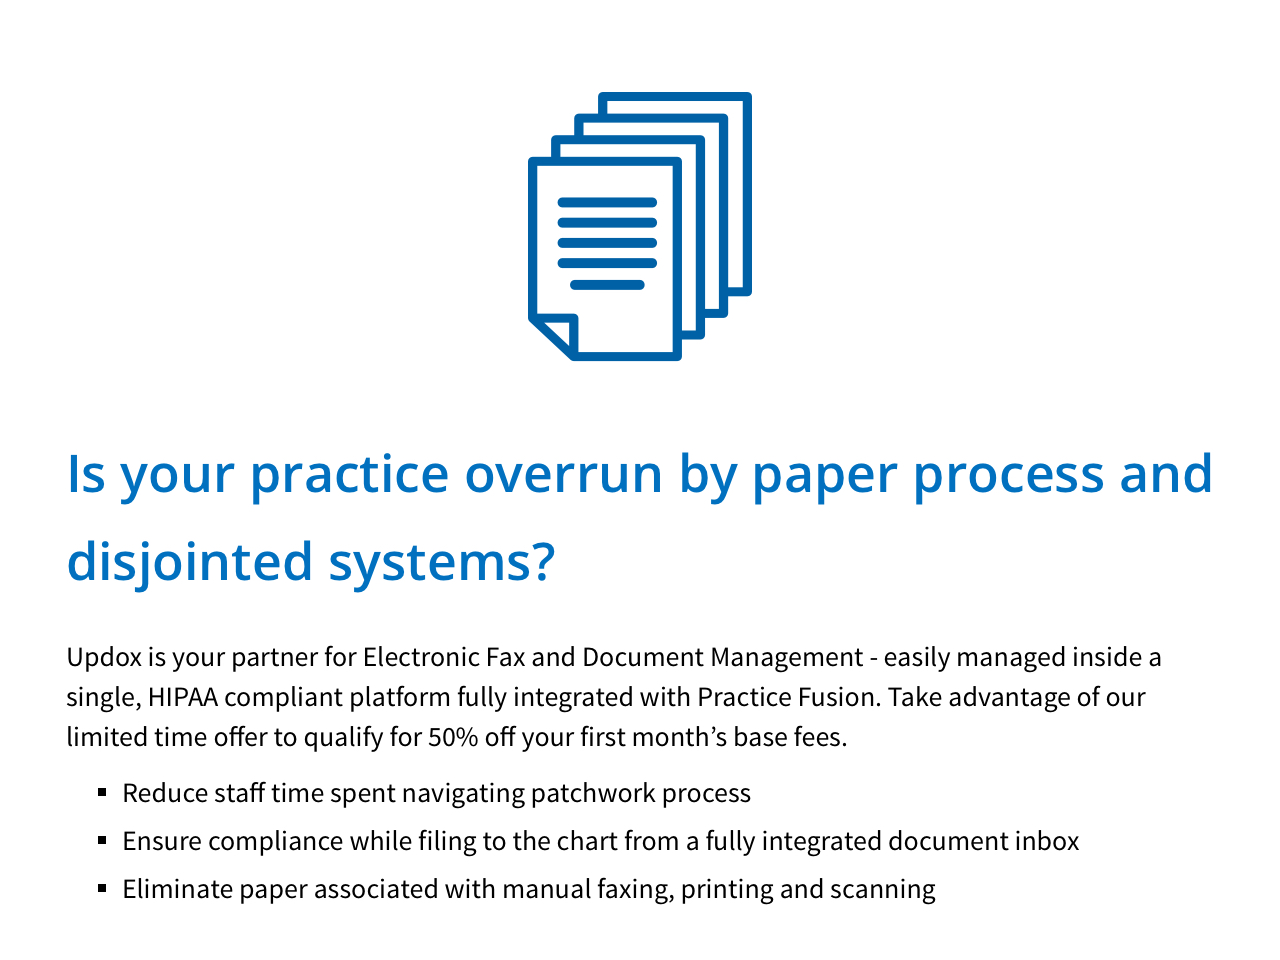 Is your practice overrun by paper prcess and disjointed systems? Updox is your partner for Electronic Fax and Document Management - easily managed inside a single, HIPAA compliant platform fully integrated with Practice Fusion. Take advantage of our limited time offer to qualify for 50% off your first month's base fees.